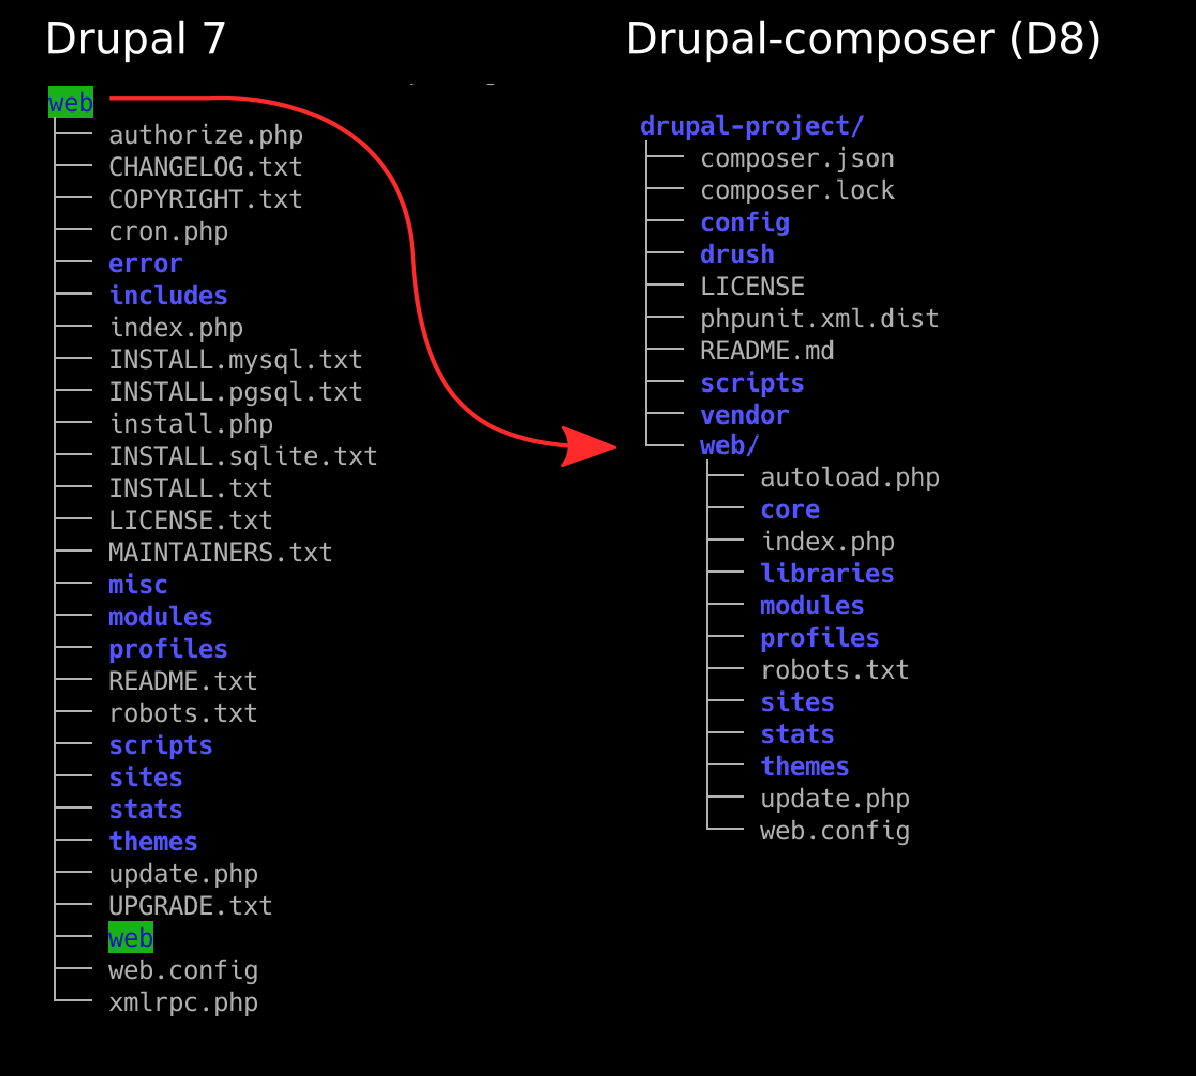 Drupal 7 structure vs Drupal 8 (with drupal-composer) structure